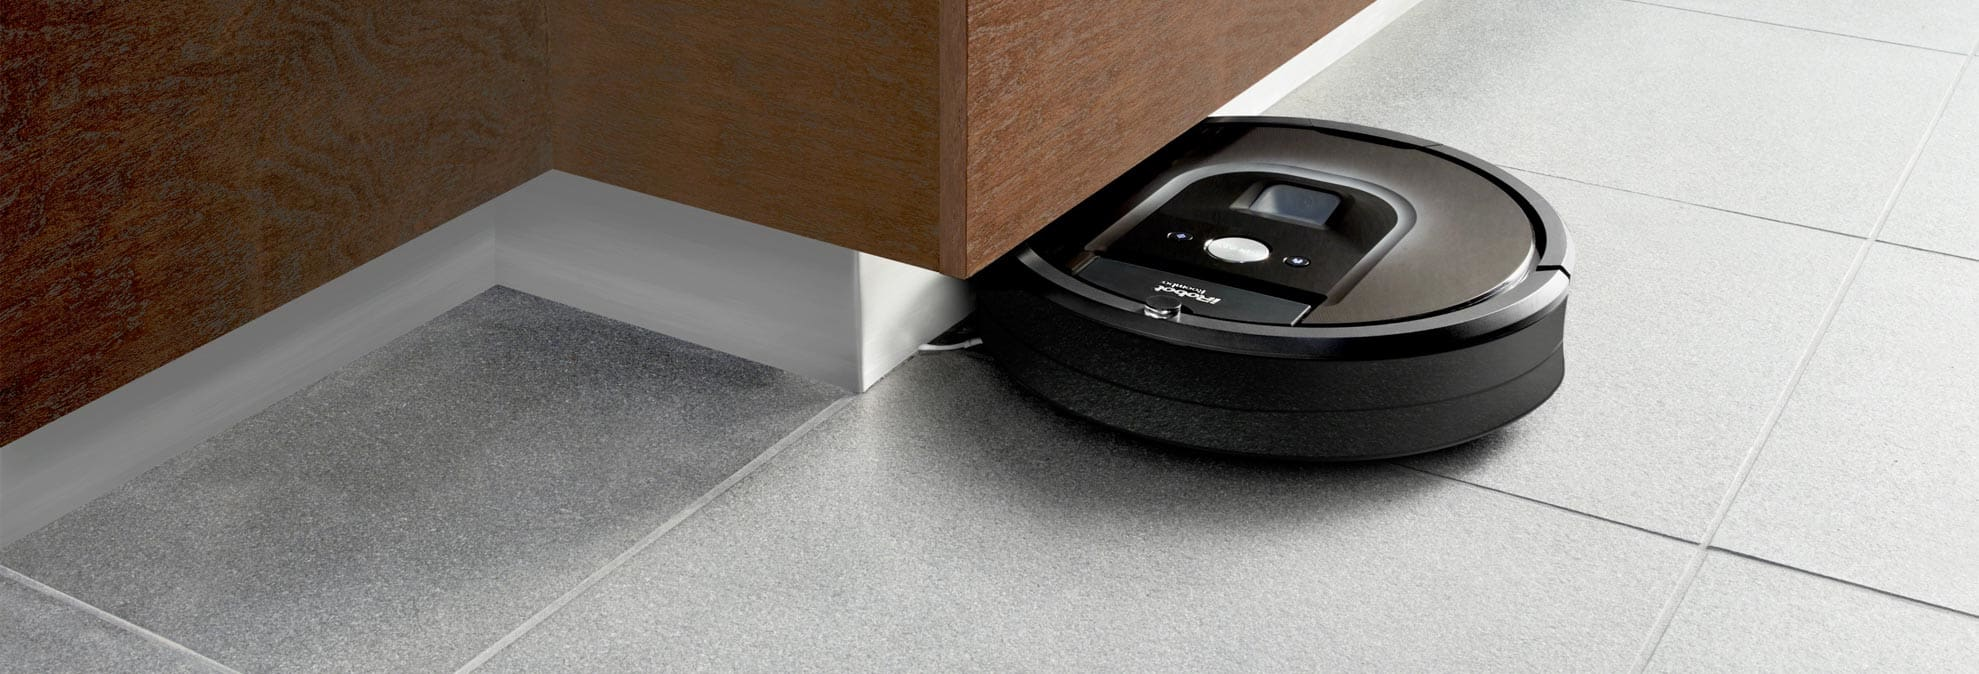 How To Keep A Roomba Vacuum Cleaner From Collecting Data